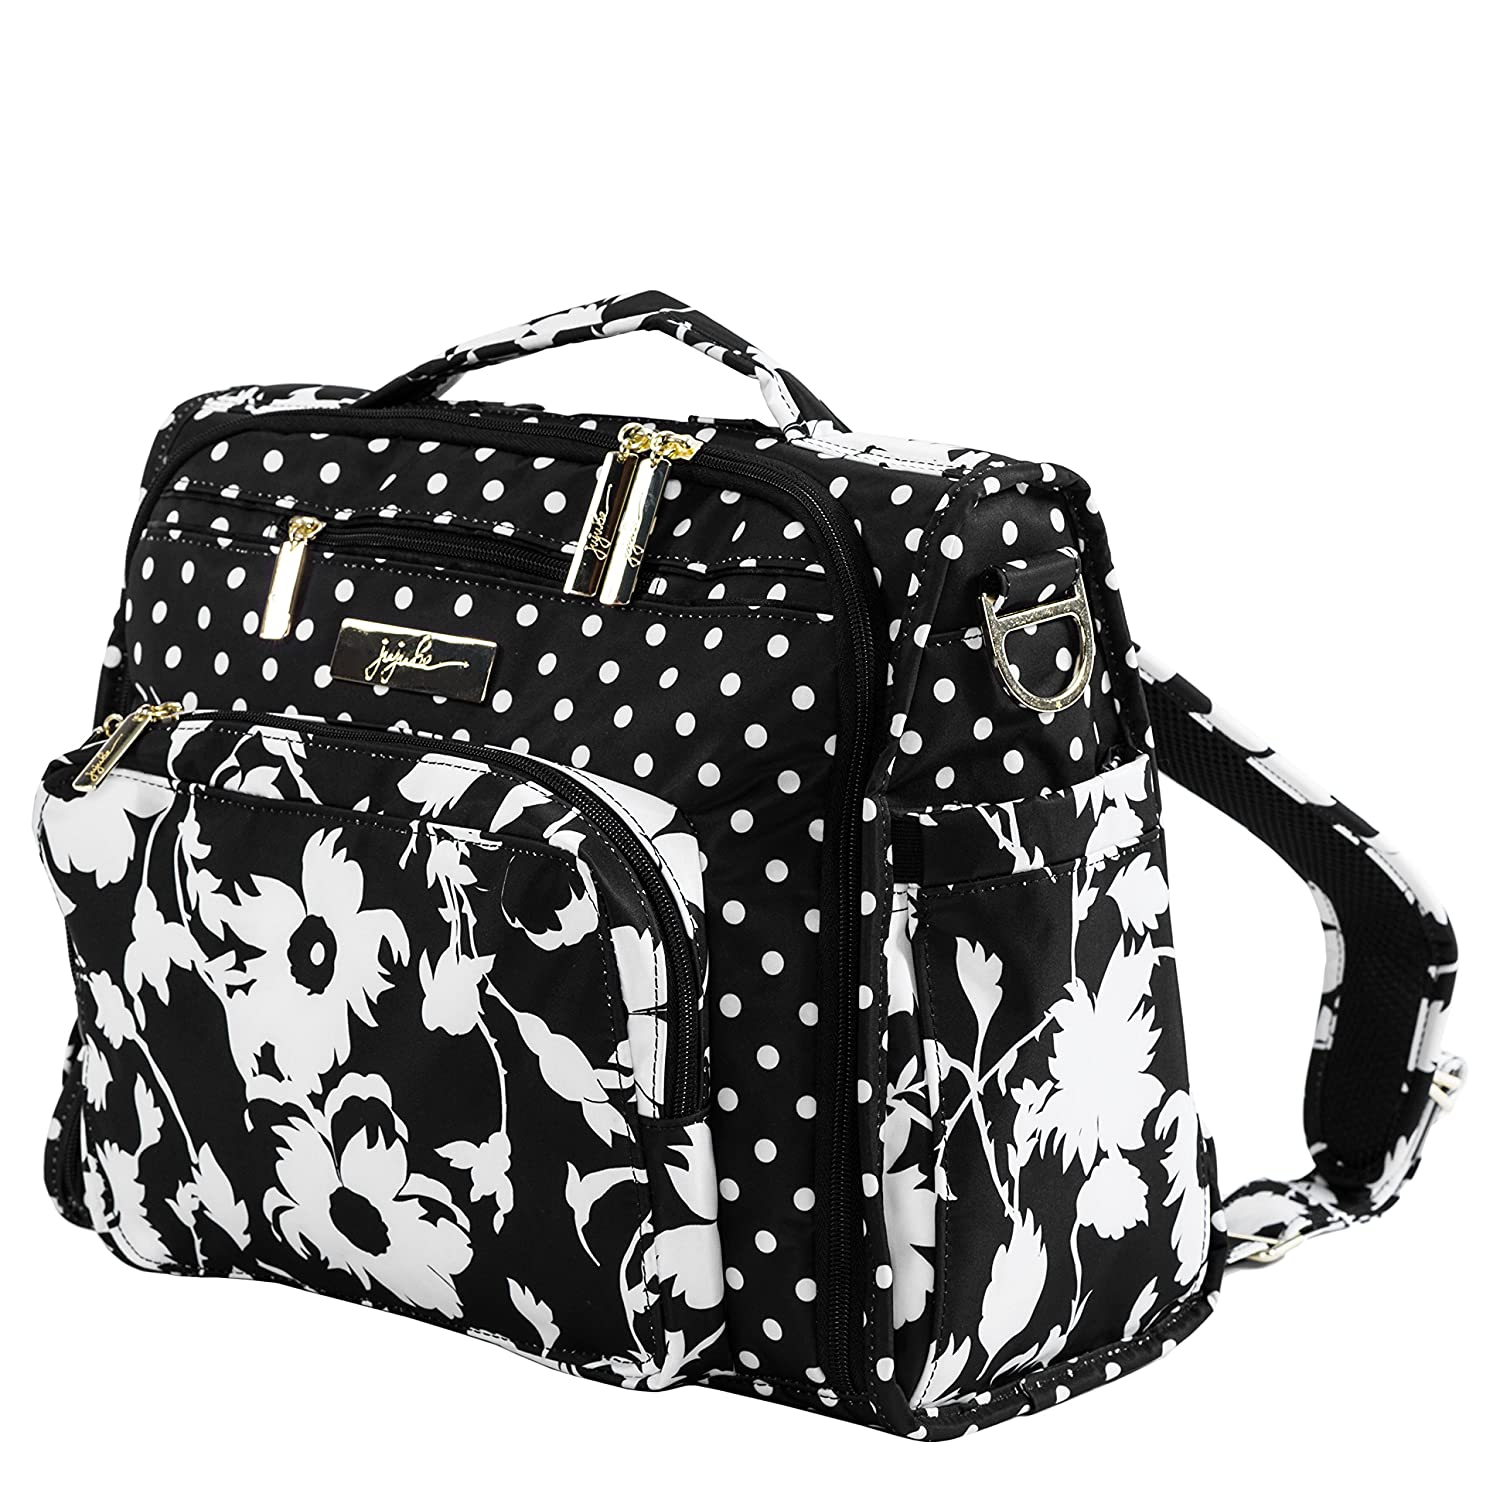 Ju-Ju-Be Legacy Collection B.F.F. Convertible Diaper Bag, The Queen of the Nile 13FM02LTQN